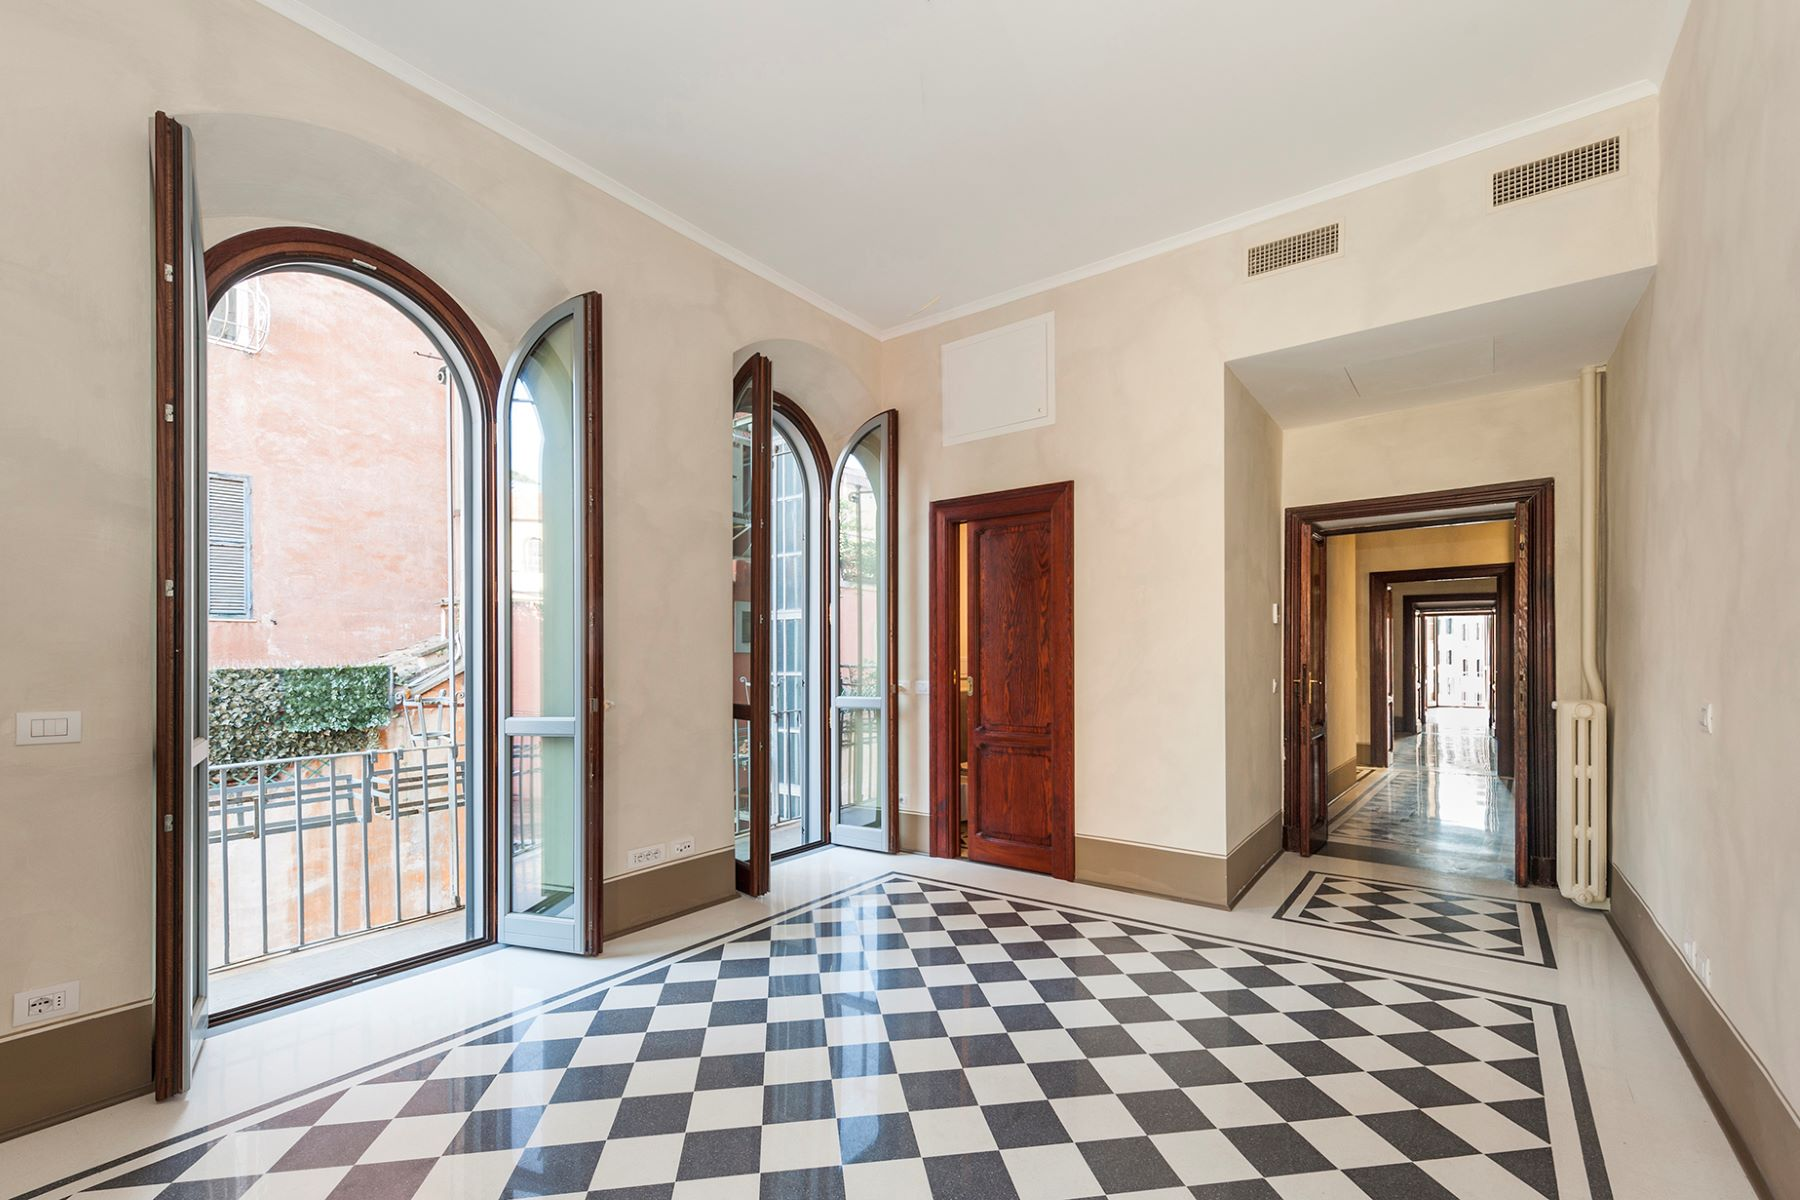 Additional photo for property listing at Magnificent apartment overlooking Piazza di Spagna Rome, Rome Italien